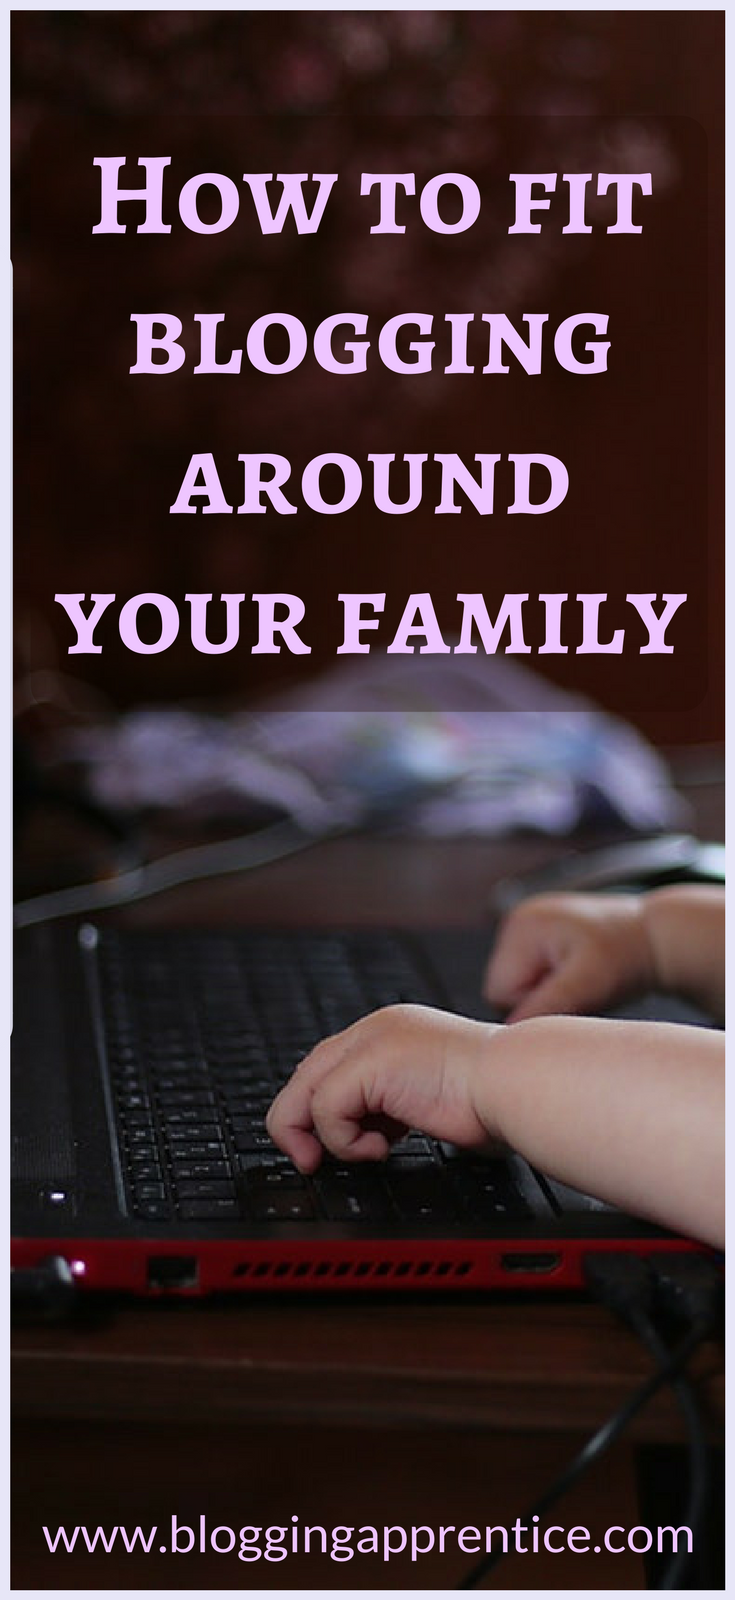 How can you fit blogging around your family? We've got a few tips for you at BloggingApprentice.com!